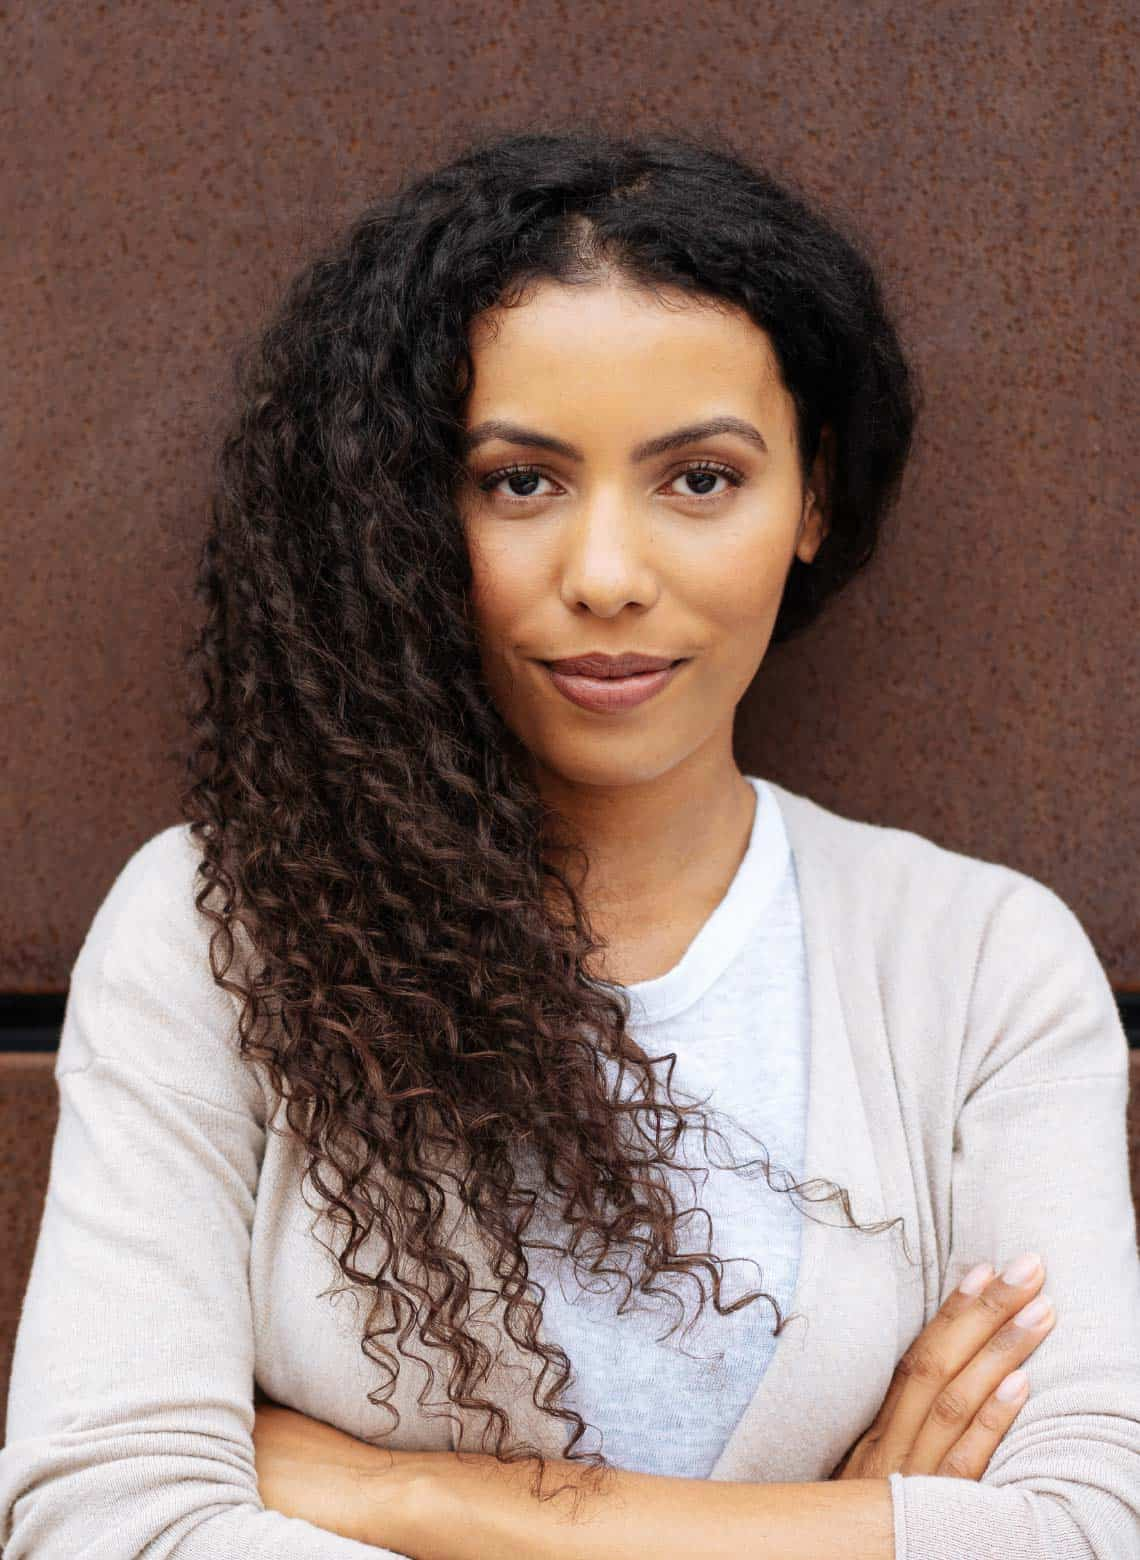 woman with long natural curls